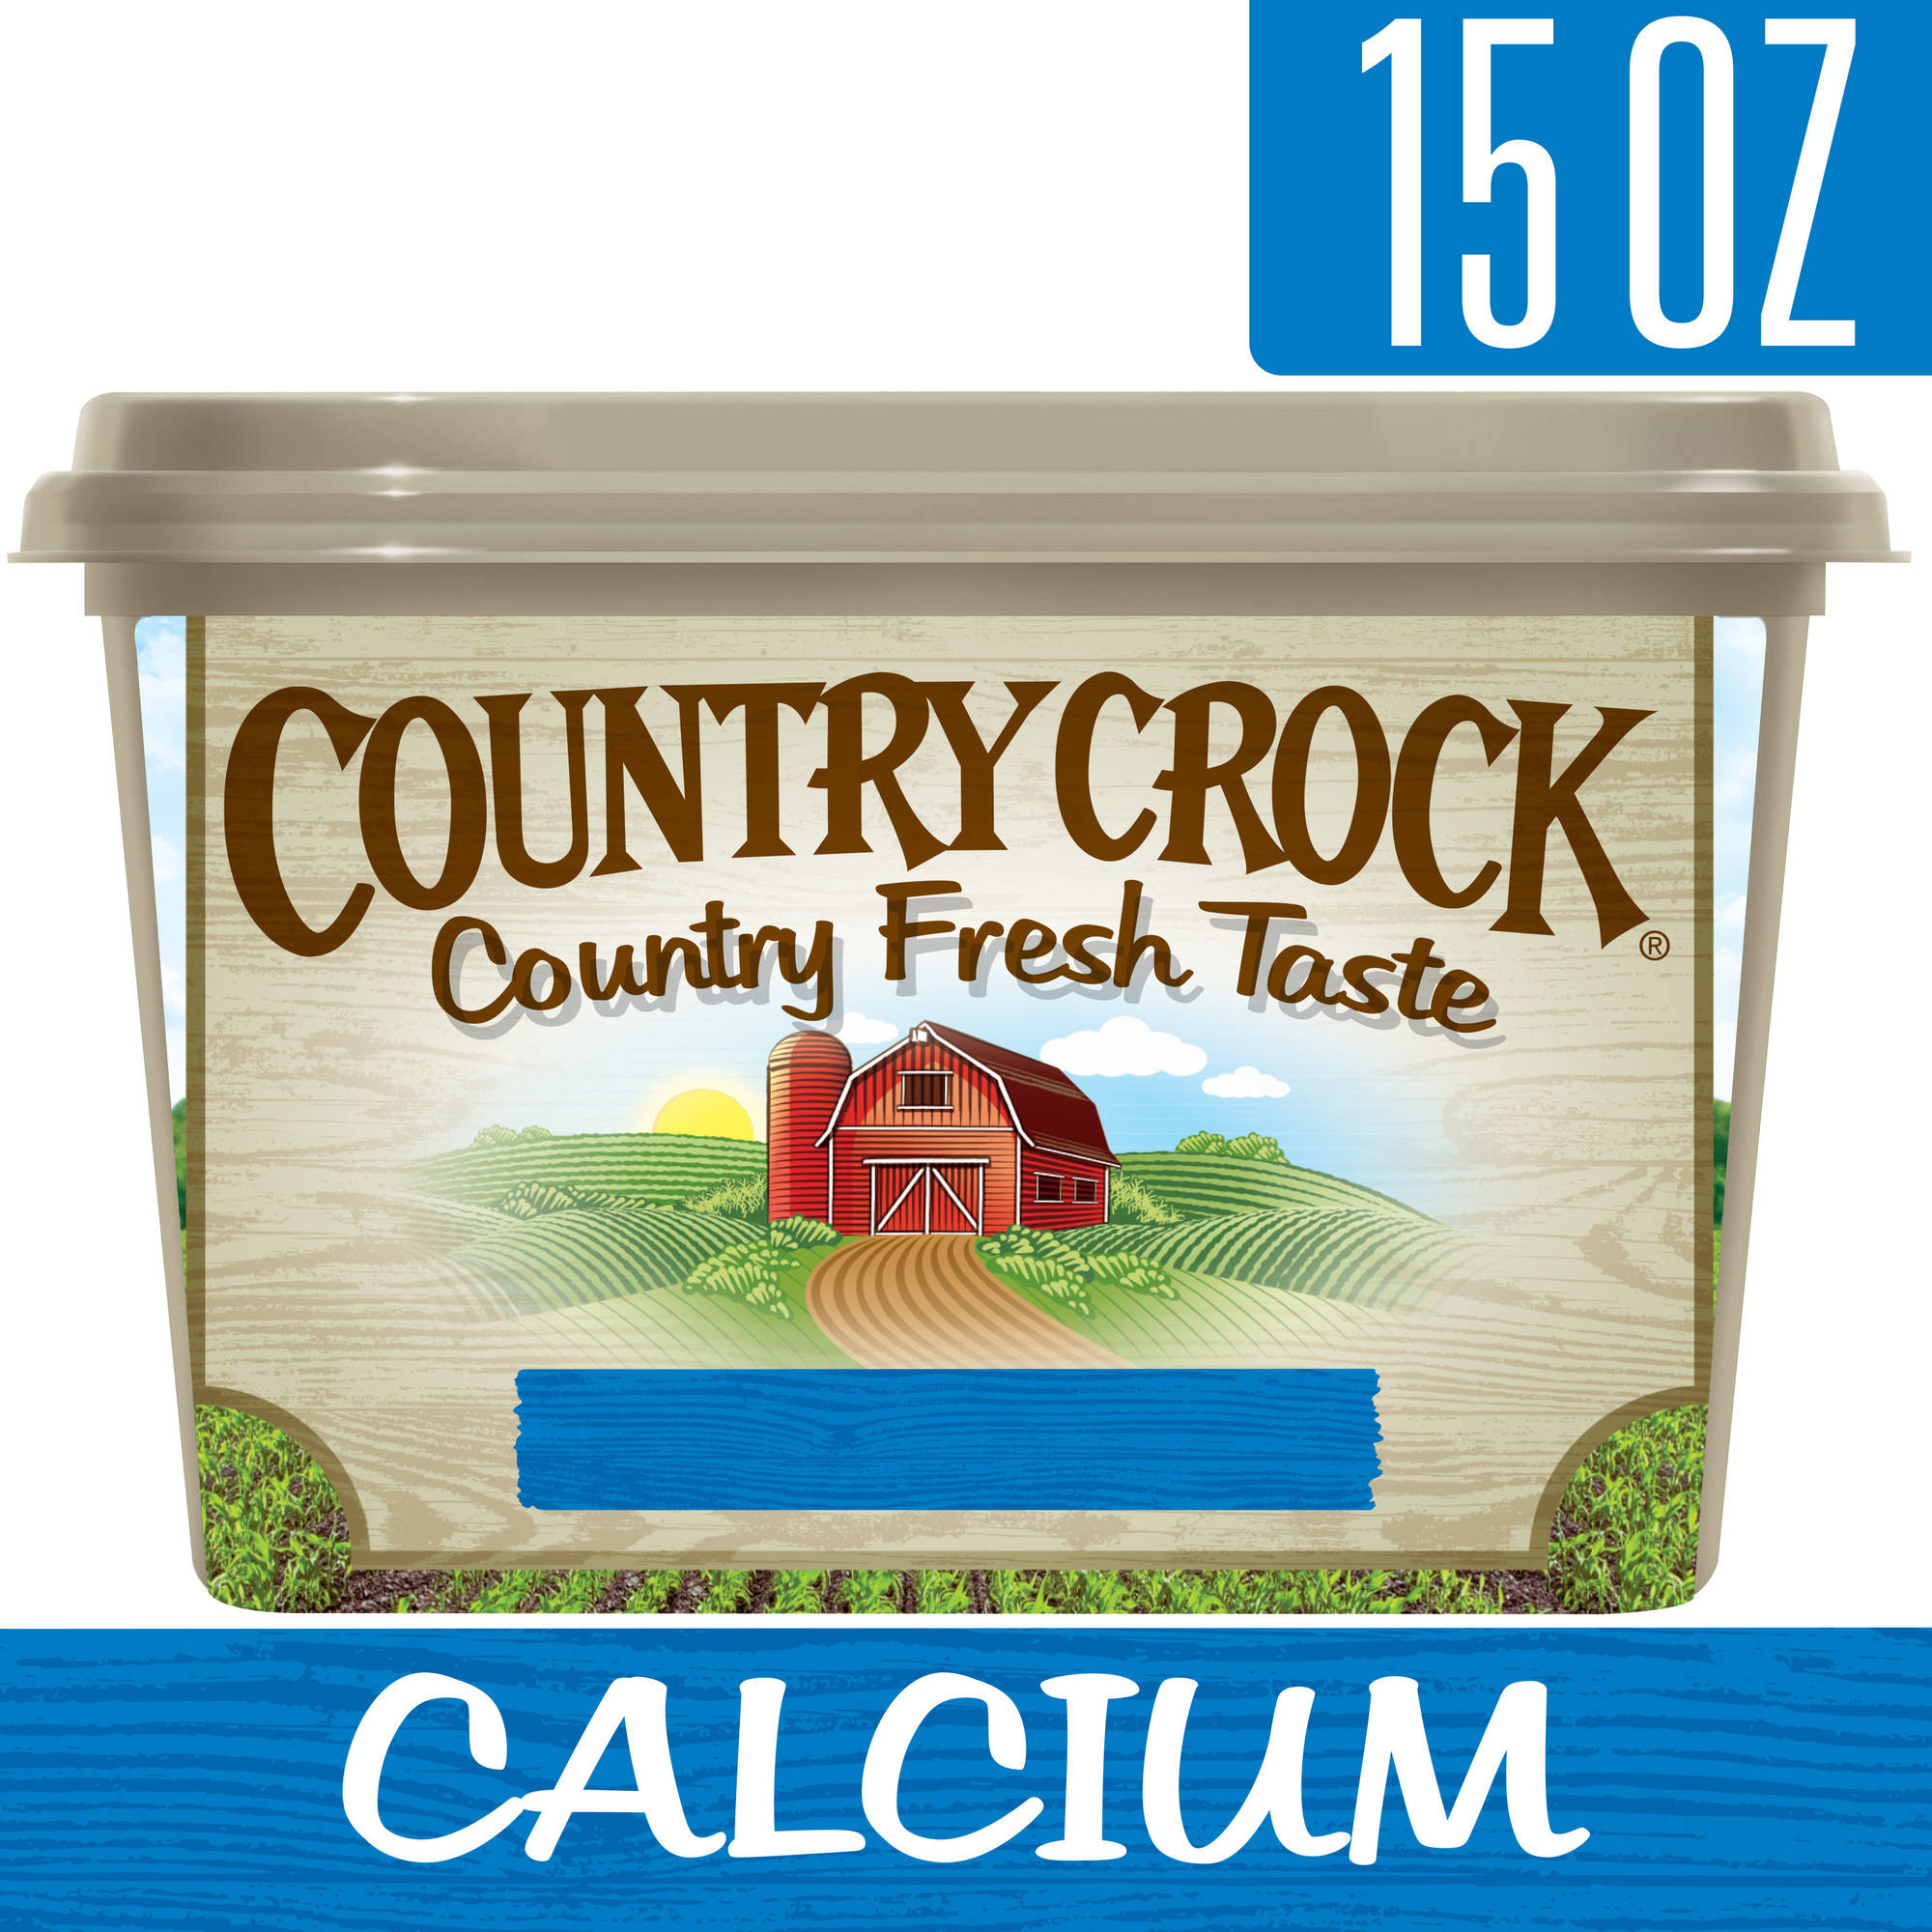 Country Crock Calcium Vegetable Oil Spread Tub, 15 oz